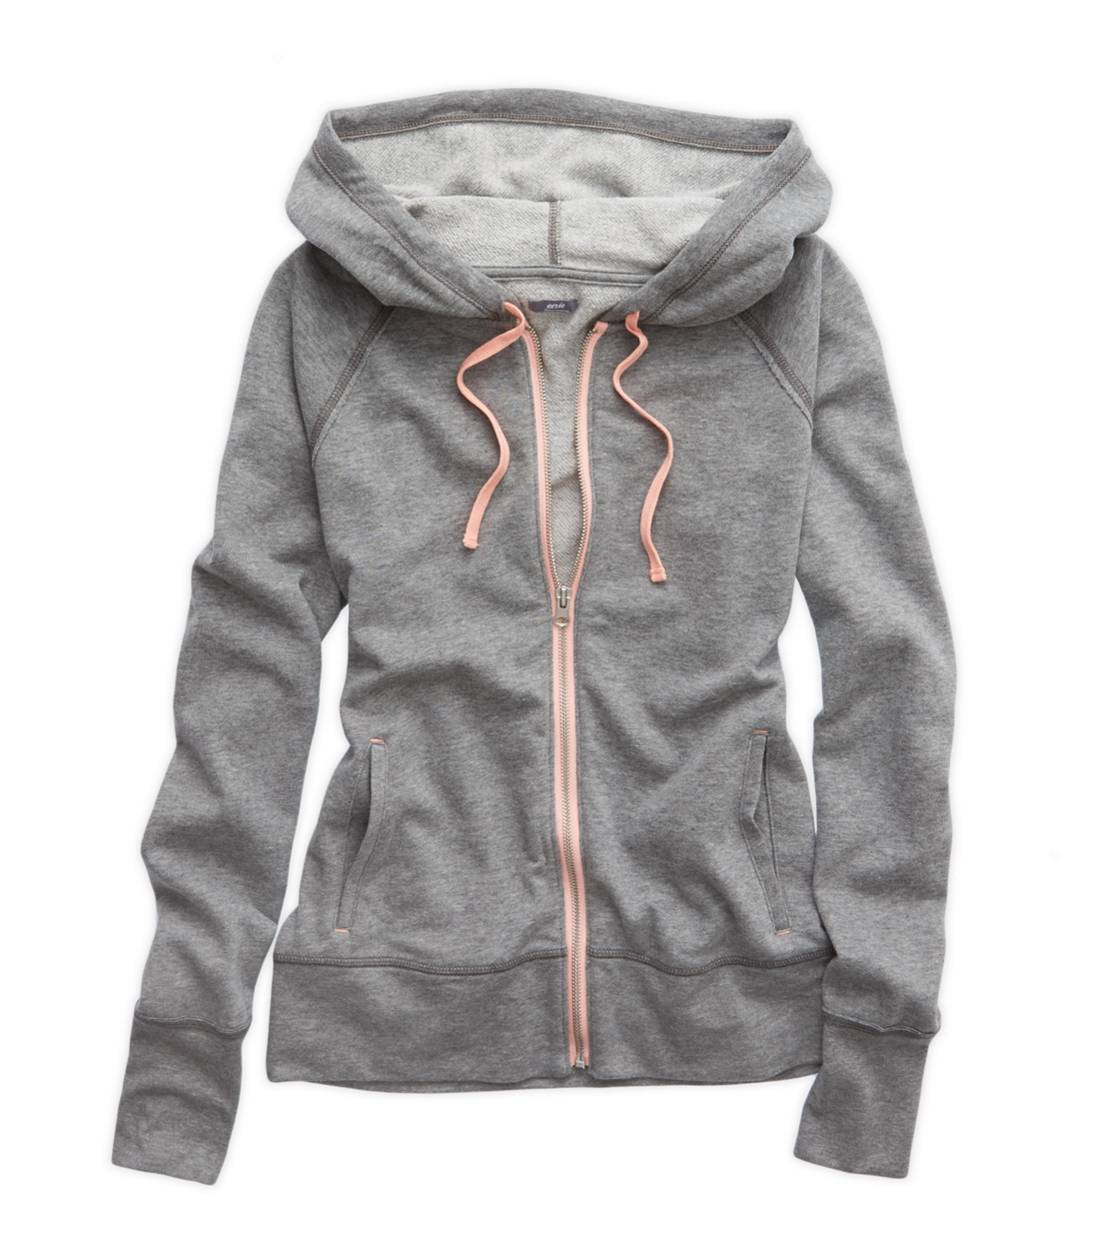 Dark Heather Grey Aerie Full Zip Hooded Sweatshirt